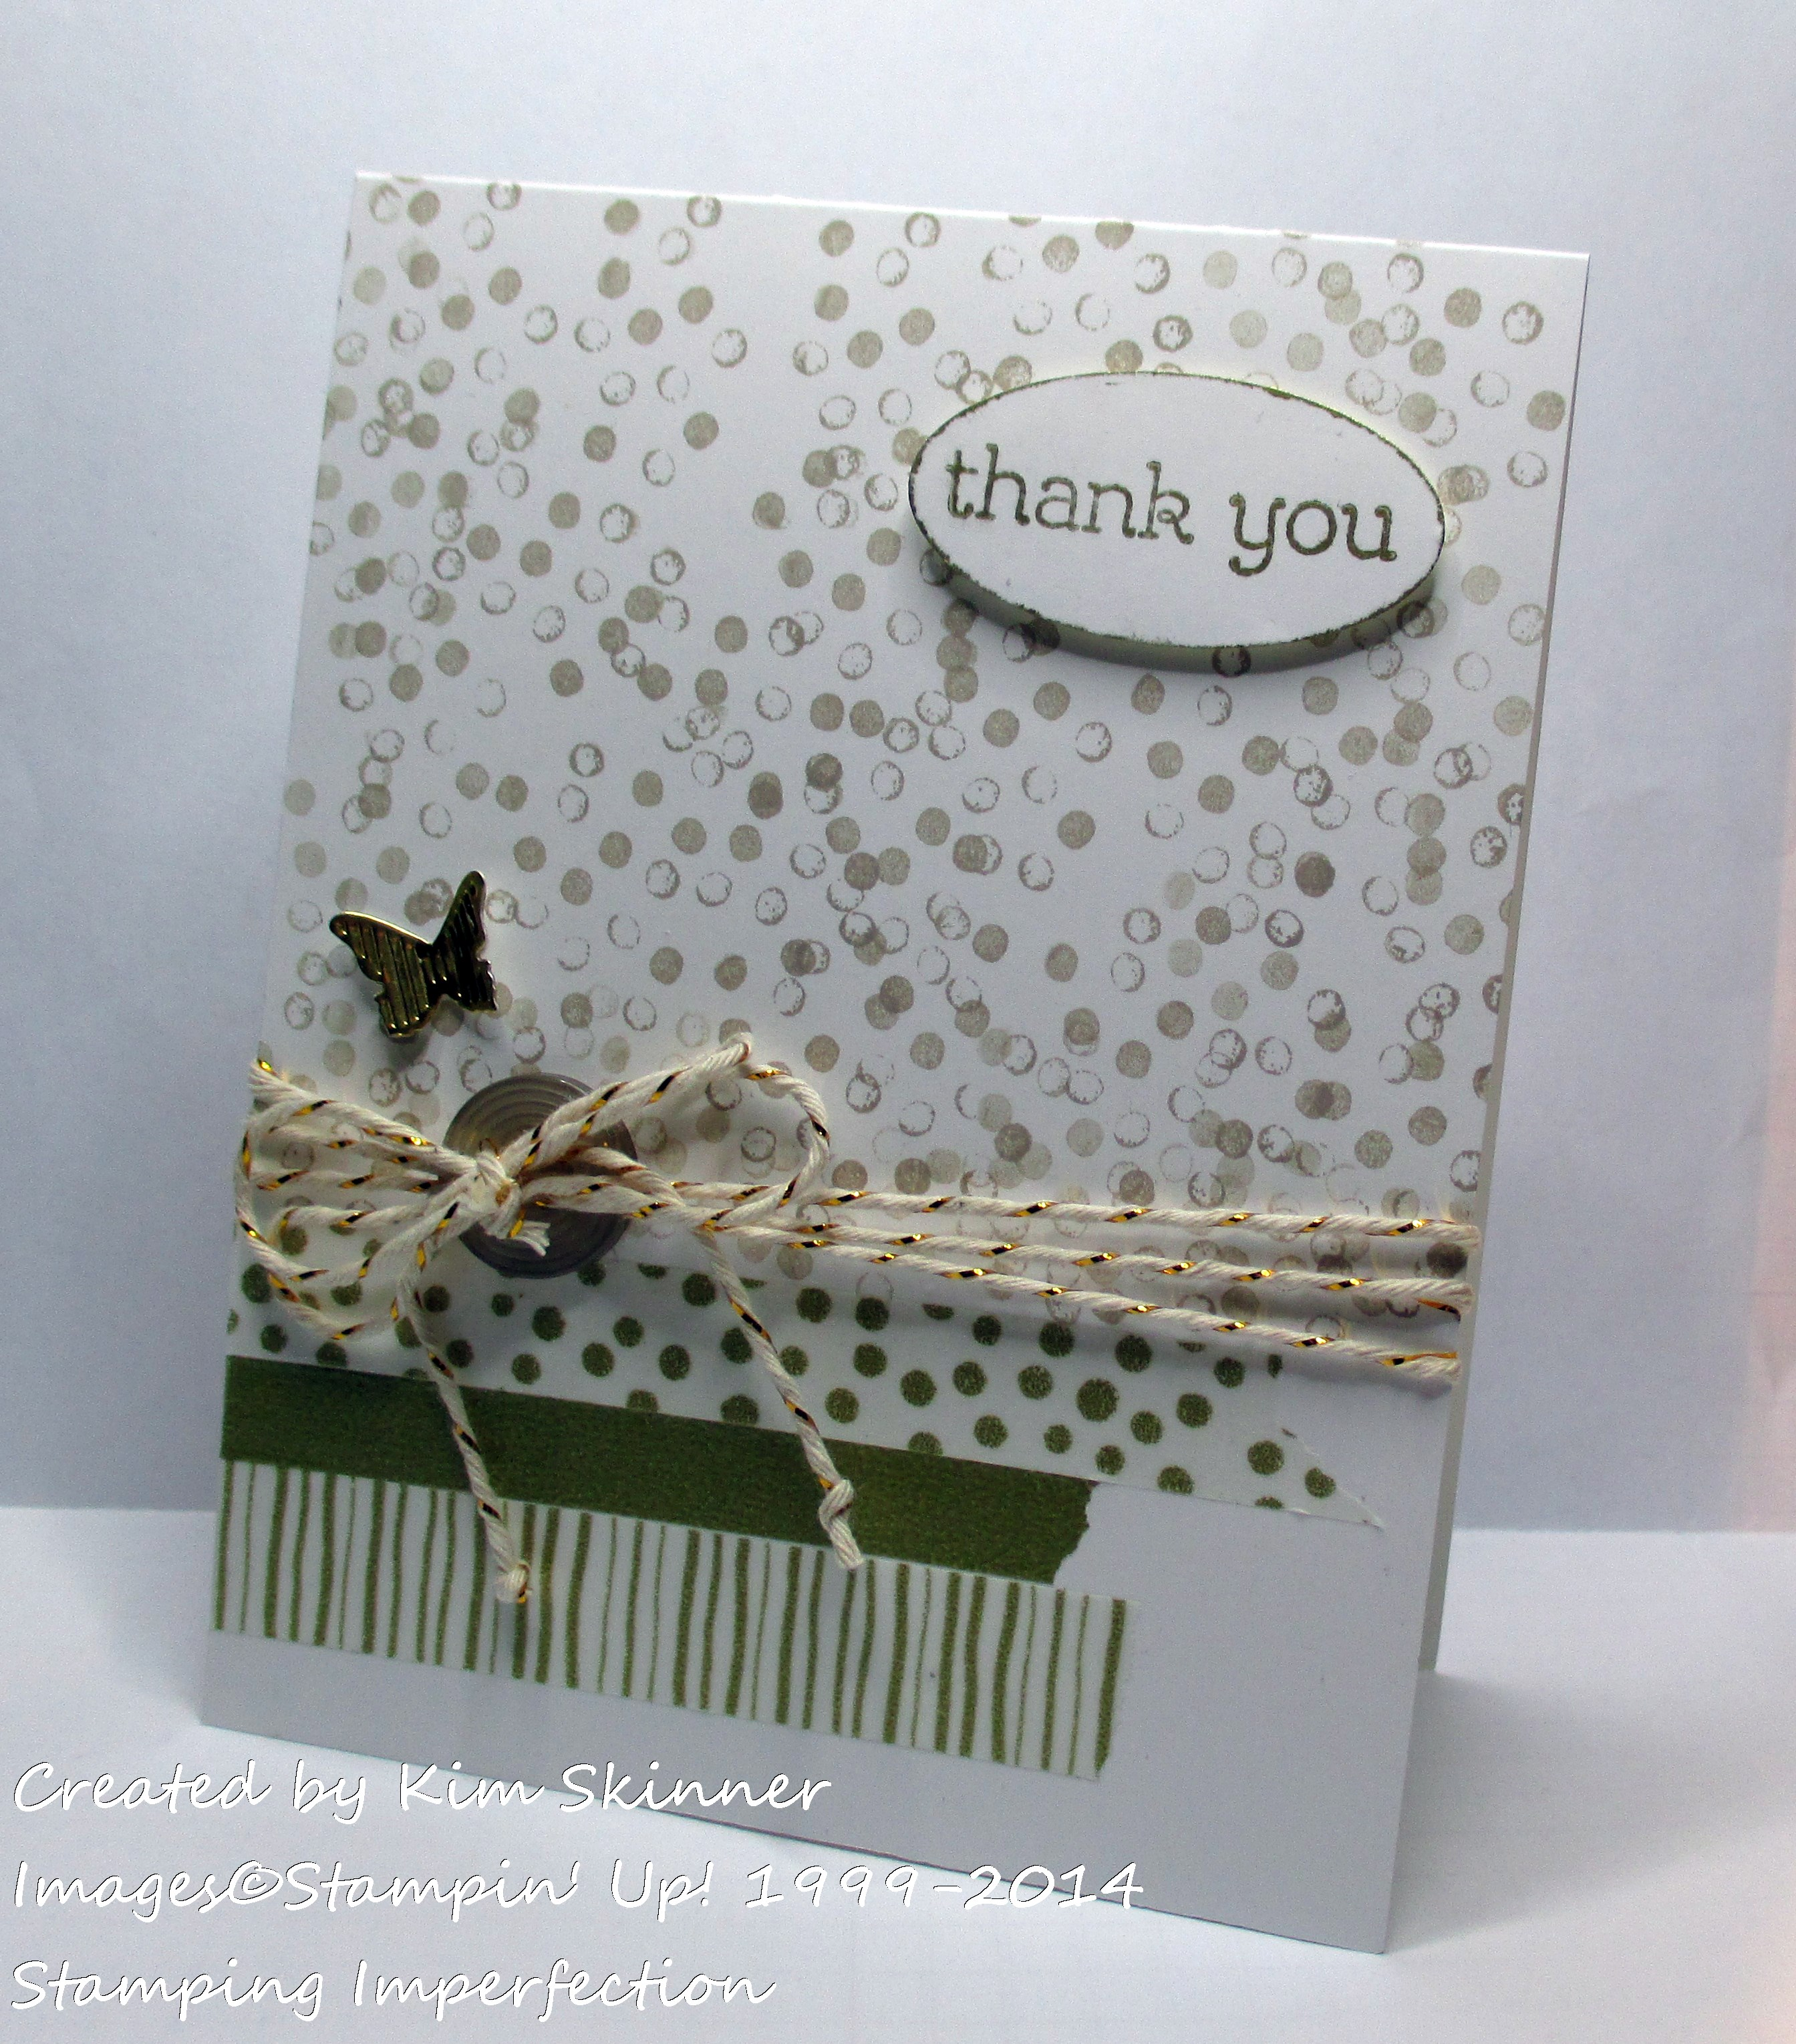 stamping imperfection gold and glitz